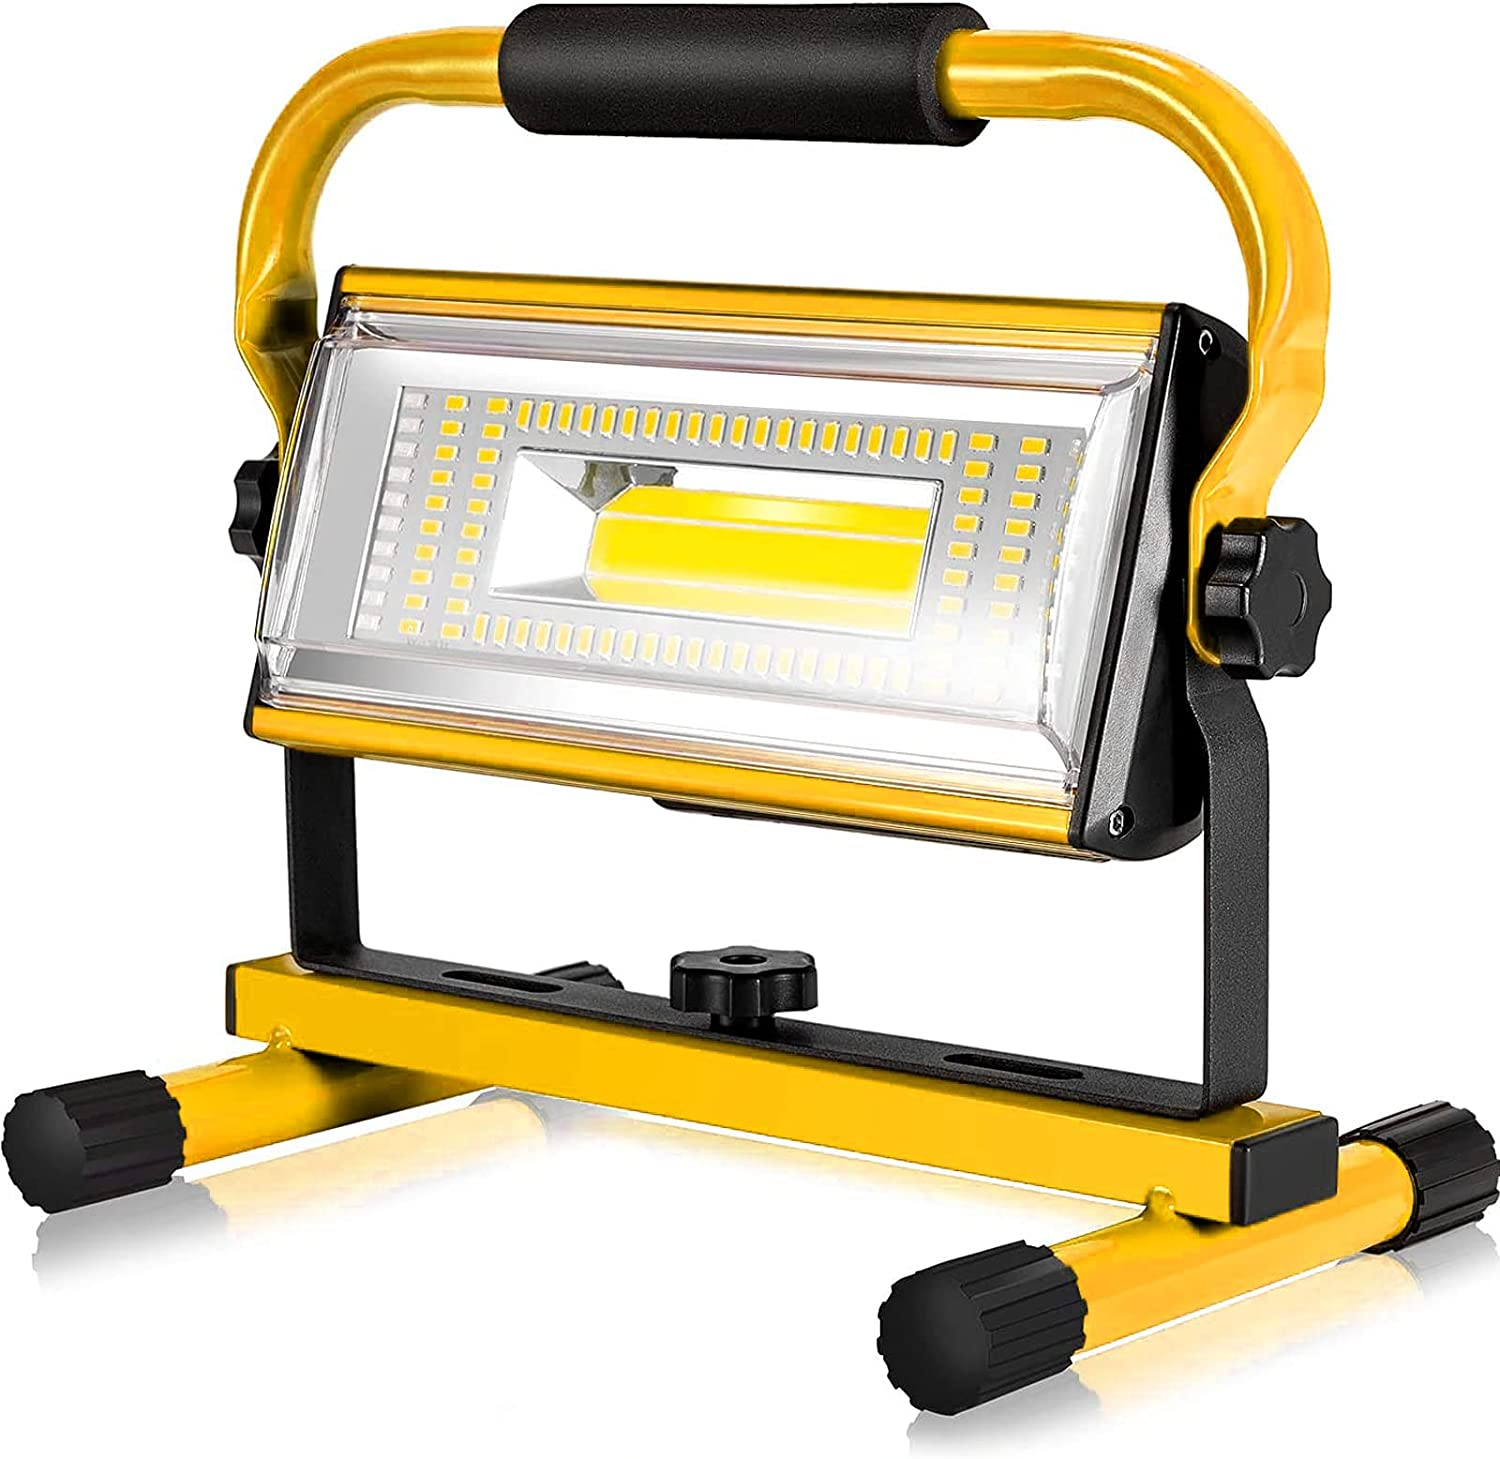 TONGNAN Portable Rechargeable Detroit Mall Max 62% OFF LED Work Light Super 8000LM 100W